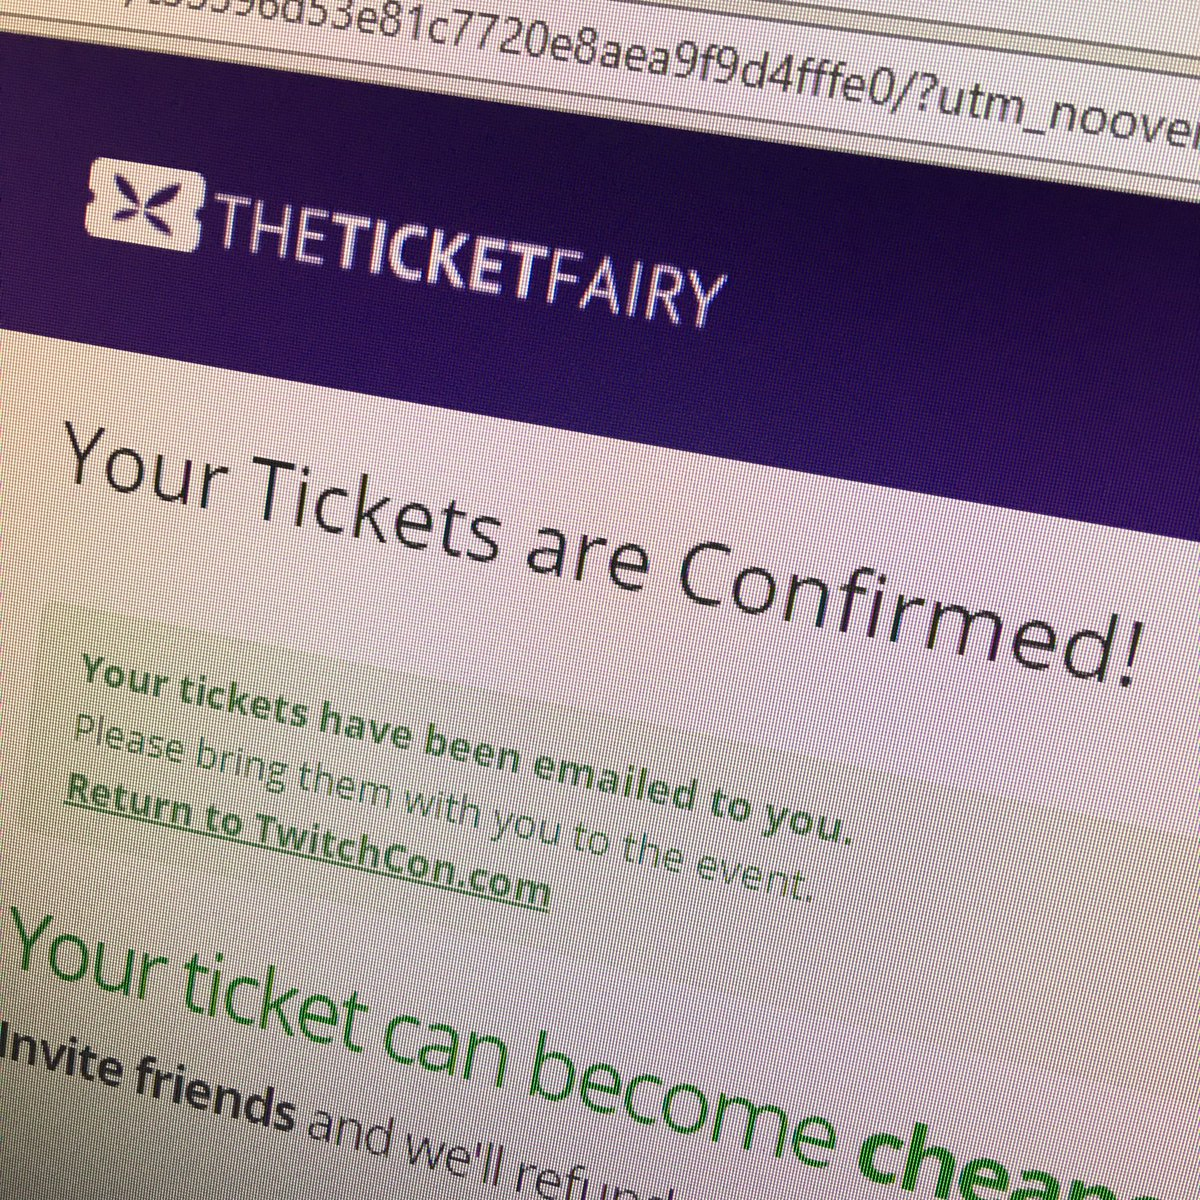 It&#39;s official! Heading to @TwitchCon in just a few weeks representing #Utomik! Hit me up if you&#39;ll be there too! #SupportSmallStreamers<br>http://pic.twitter.com/v2djVv2RwW